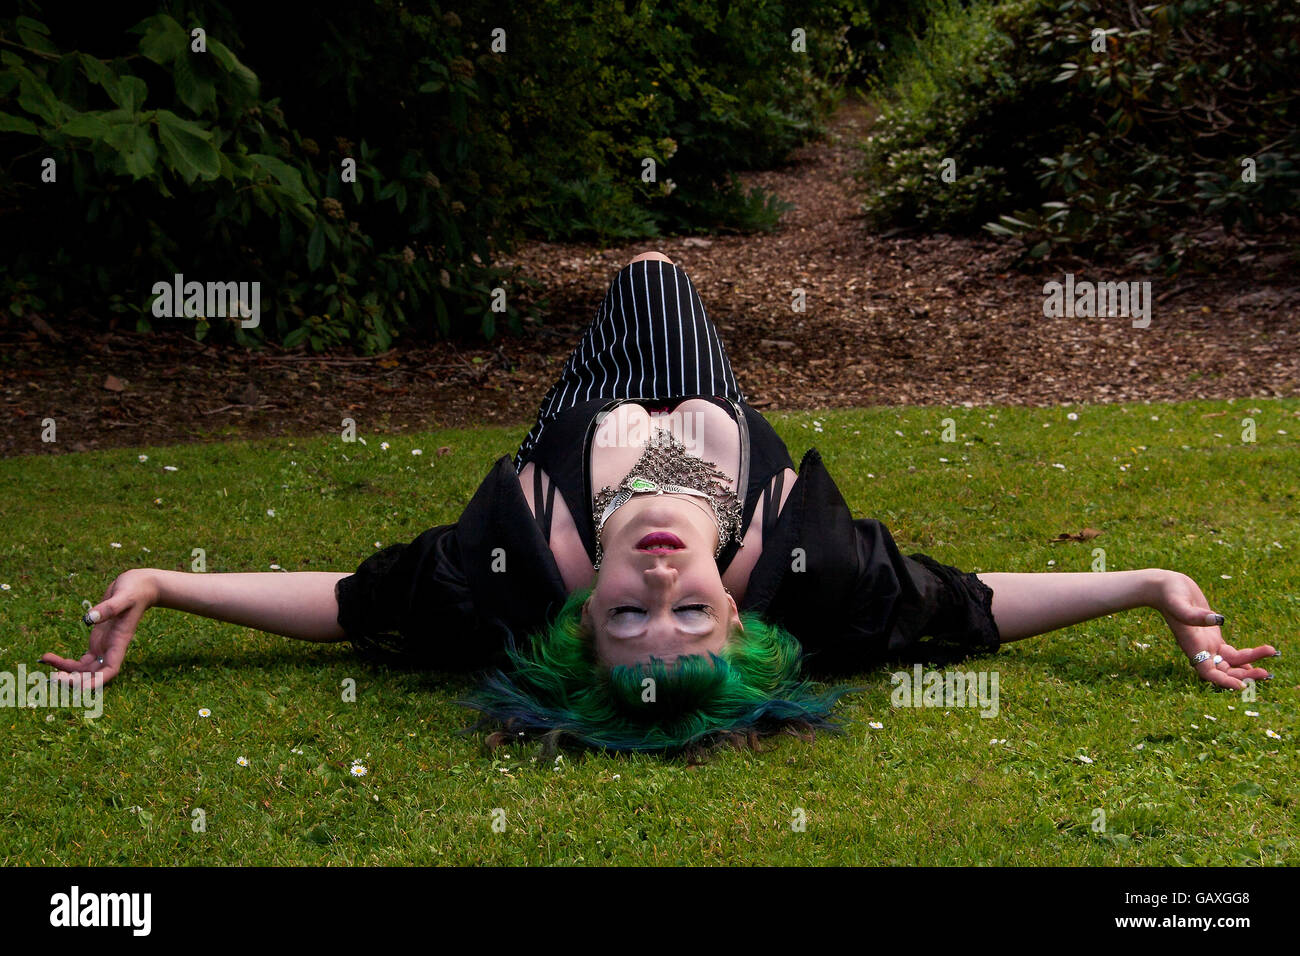 A woman wearing an Alice In Wonderland style outfit lying on the grass sleeping inside the Botanical Gardens in Stock Photo